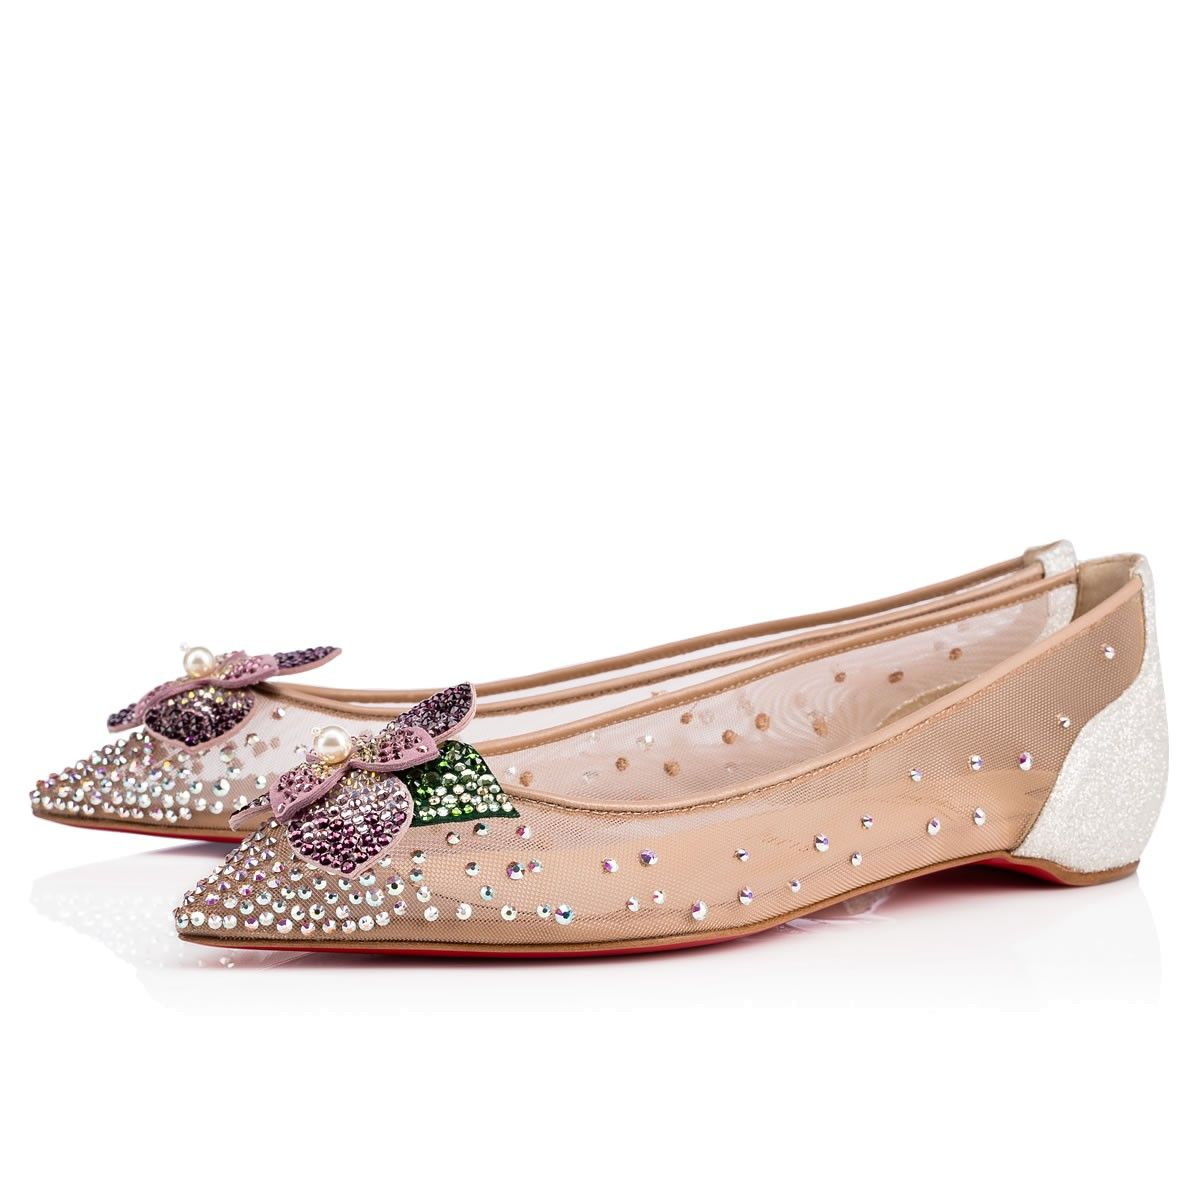 3d0ac0c4668 Feerica Flat Version Ab Strass - Women Shoes - Christian Louboutin ...